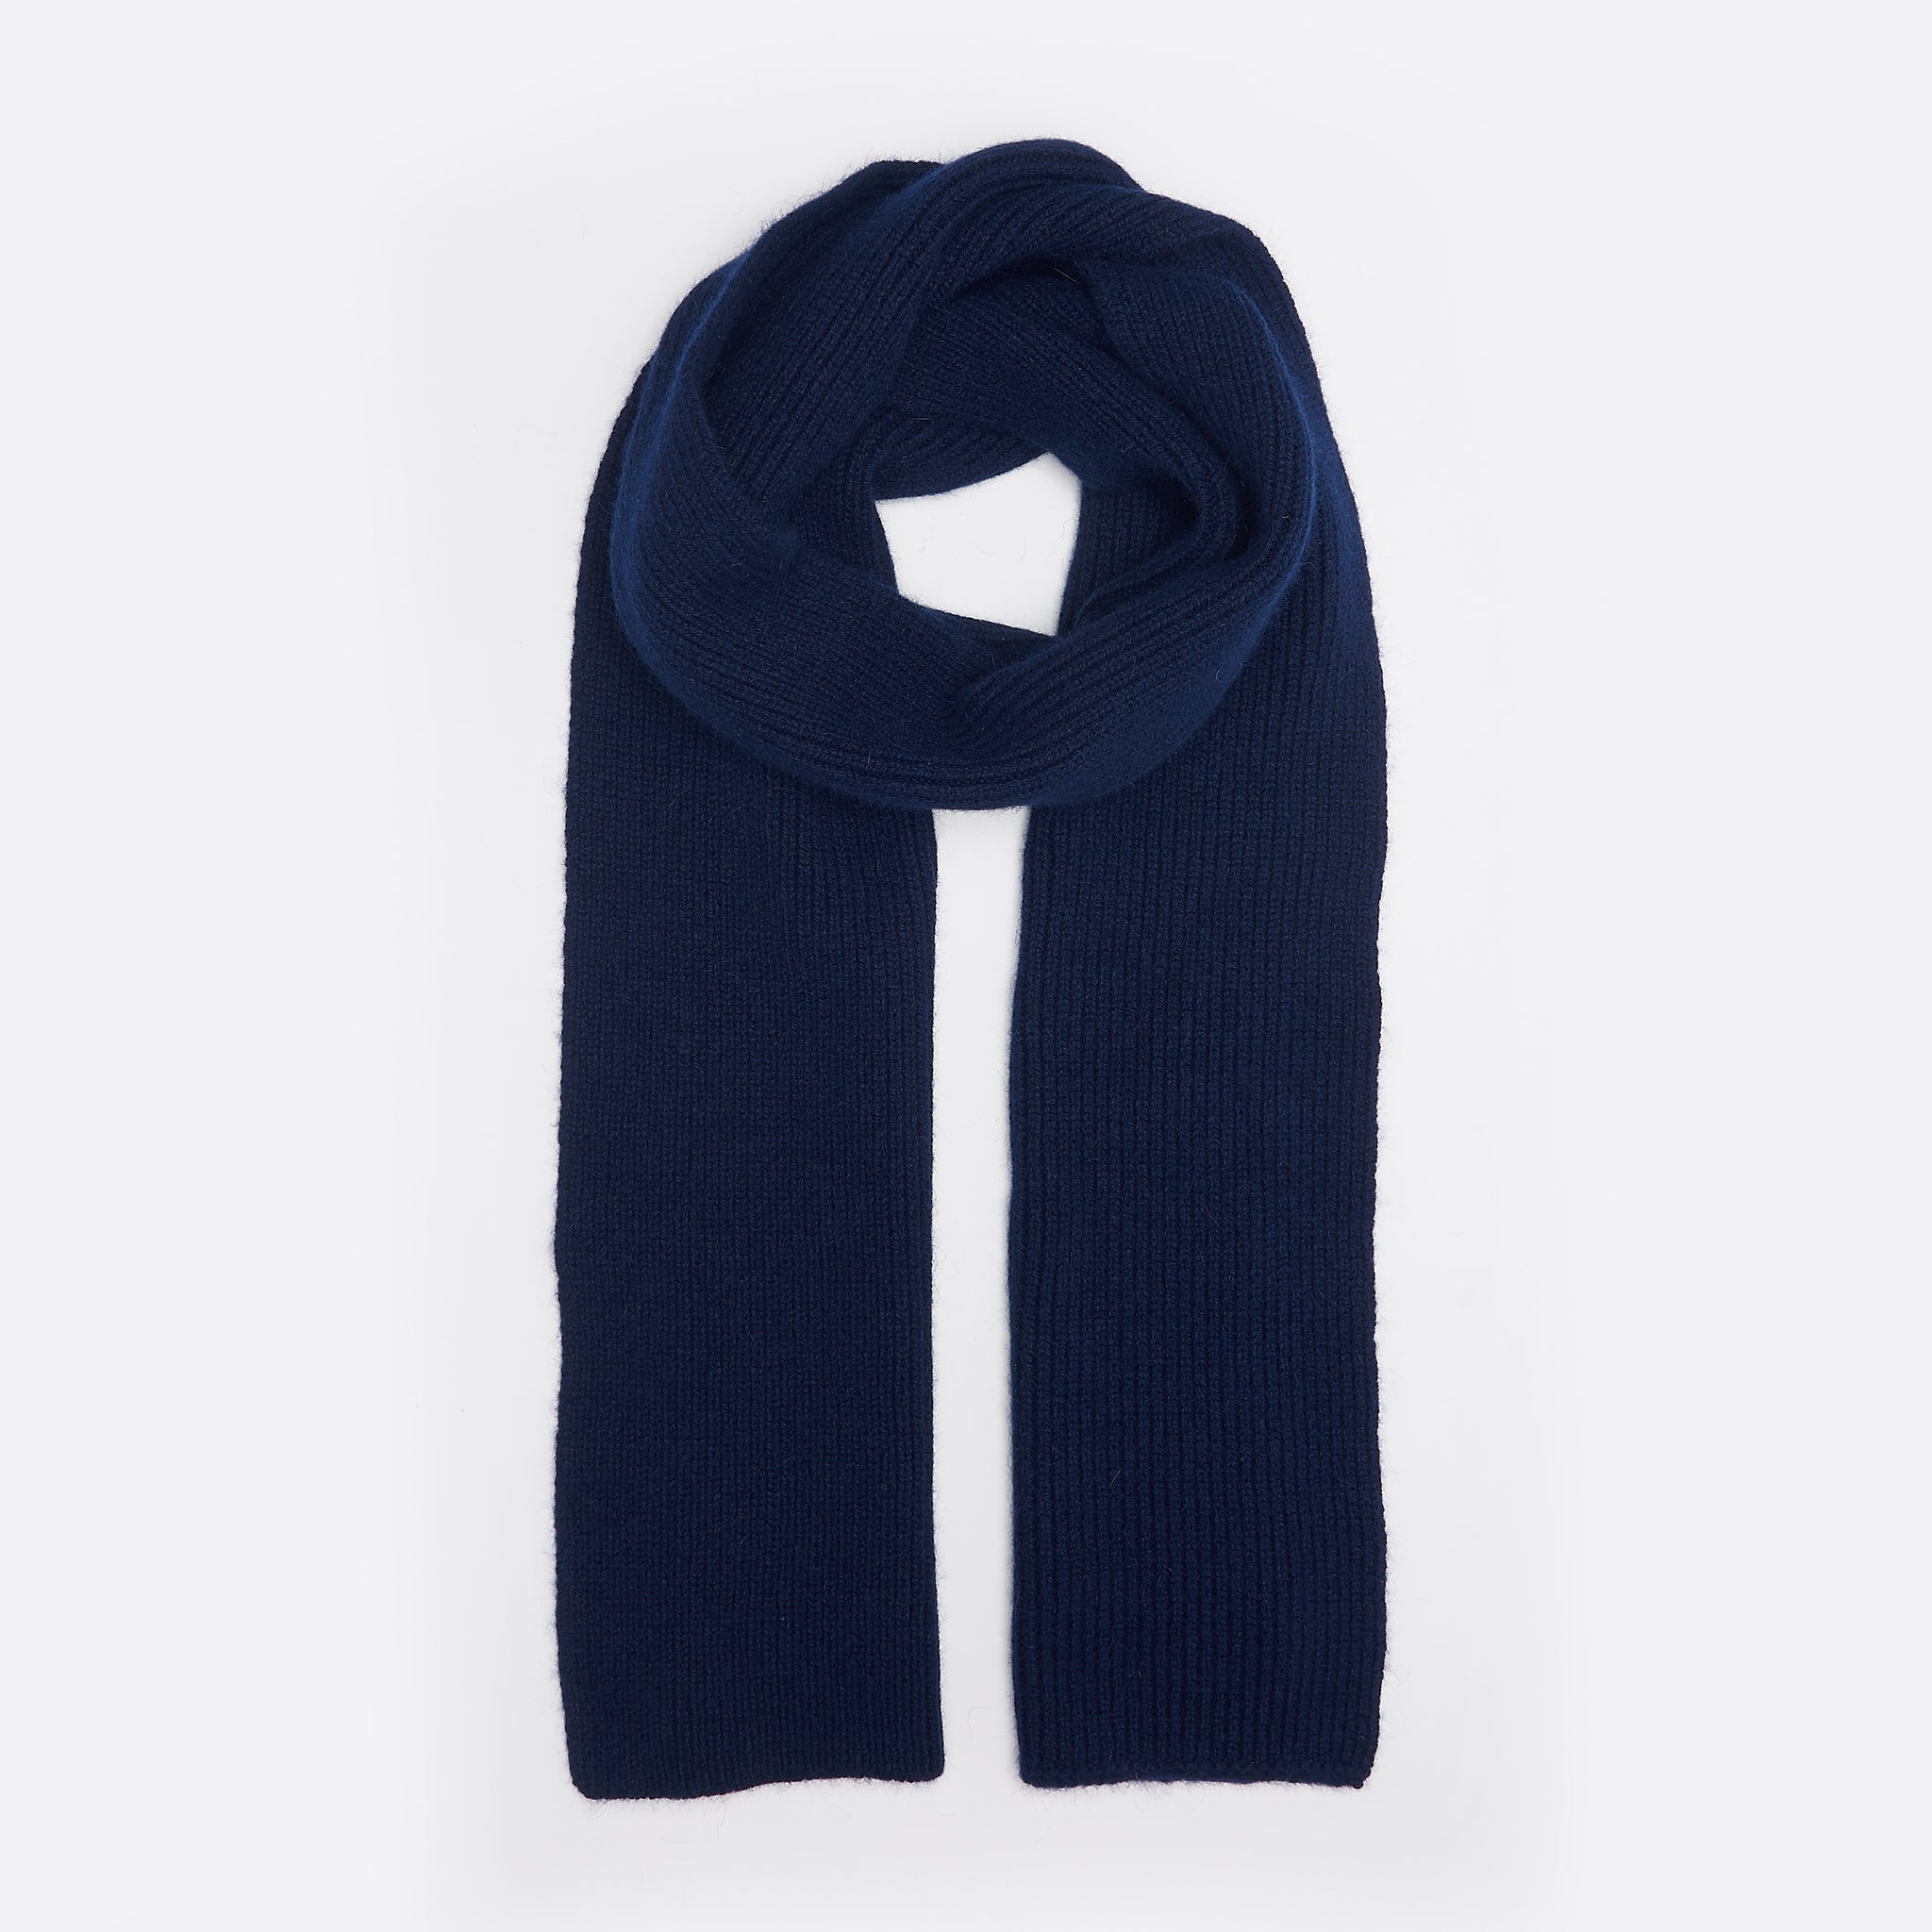 Le Bonnet Amsterdam Scarf in Midnight